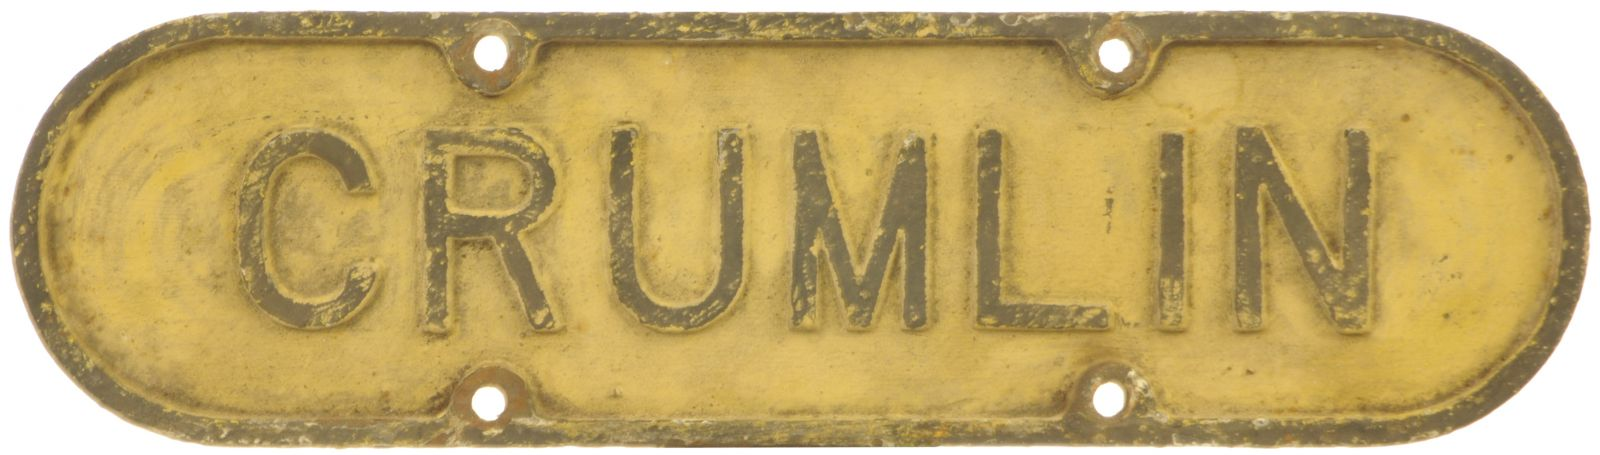 Lot 10 - Railway Station Direction Signs, Crumlin, GNR(I) Lamp Tablet: A Great Northern Railway (Ireland)